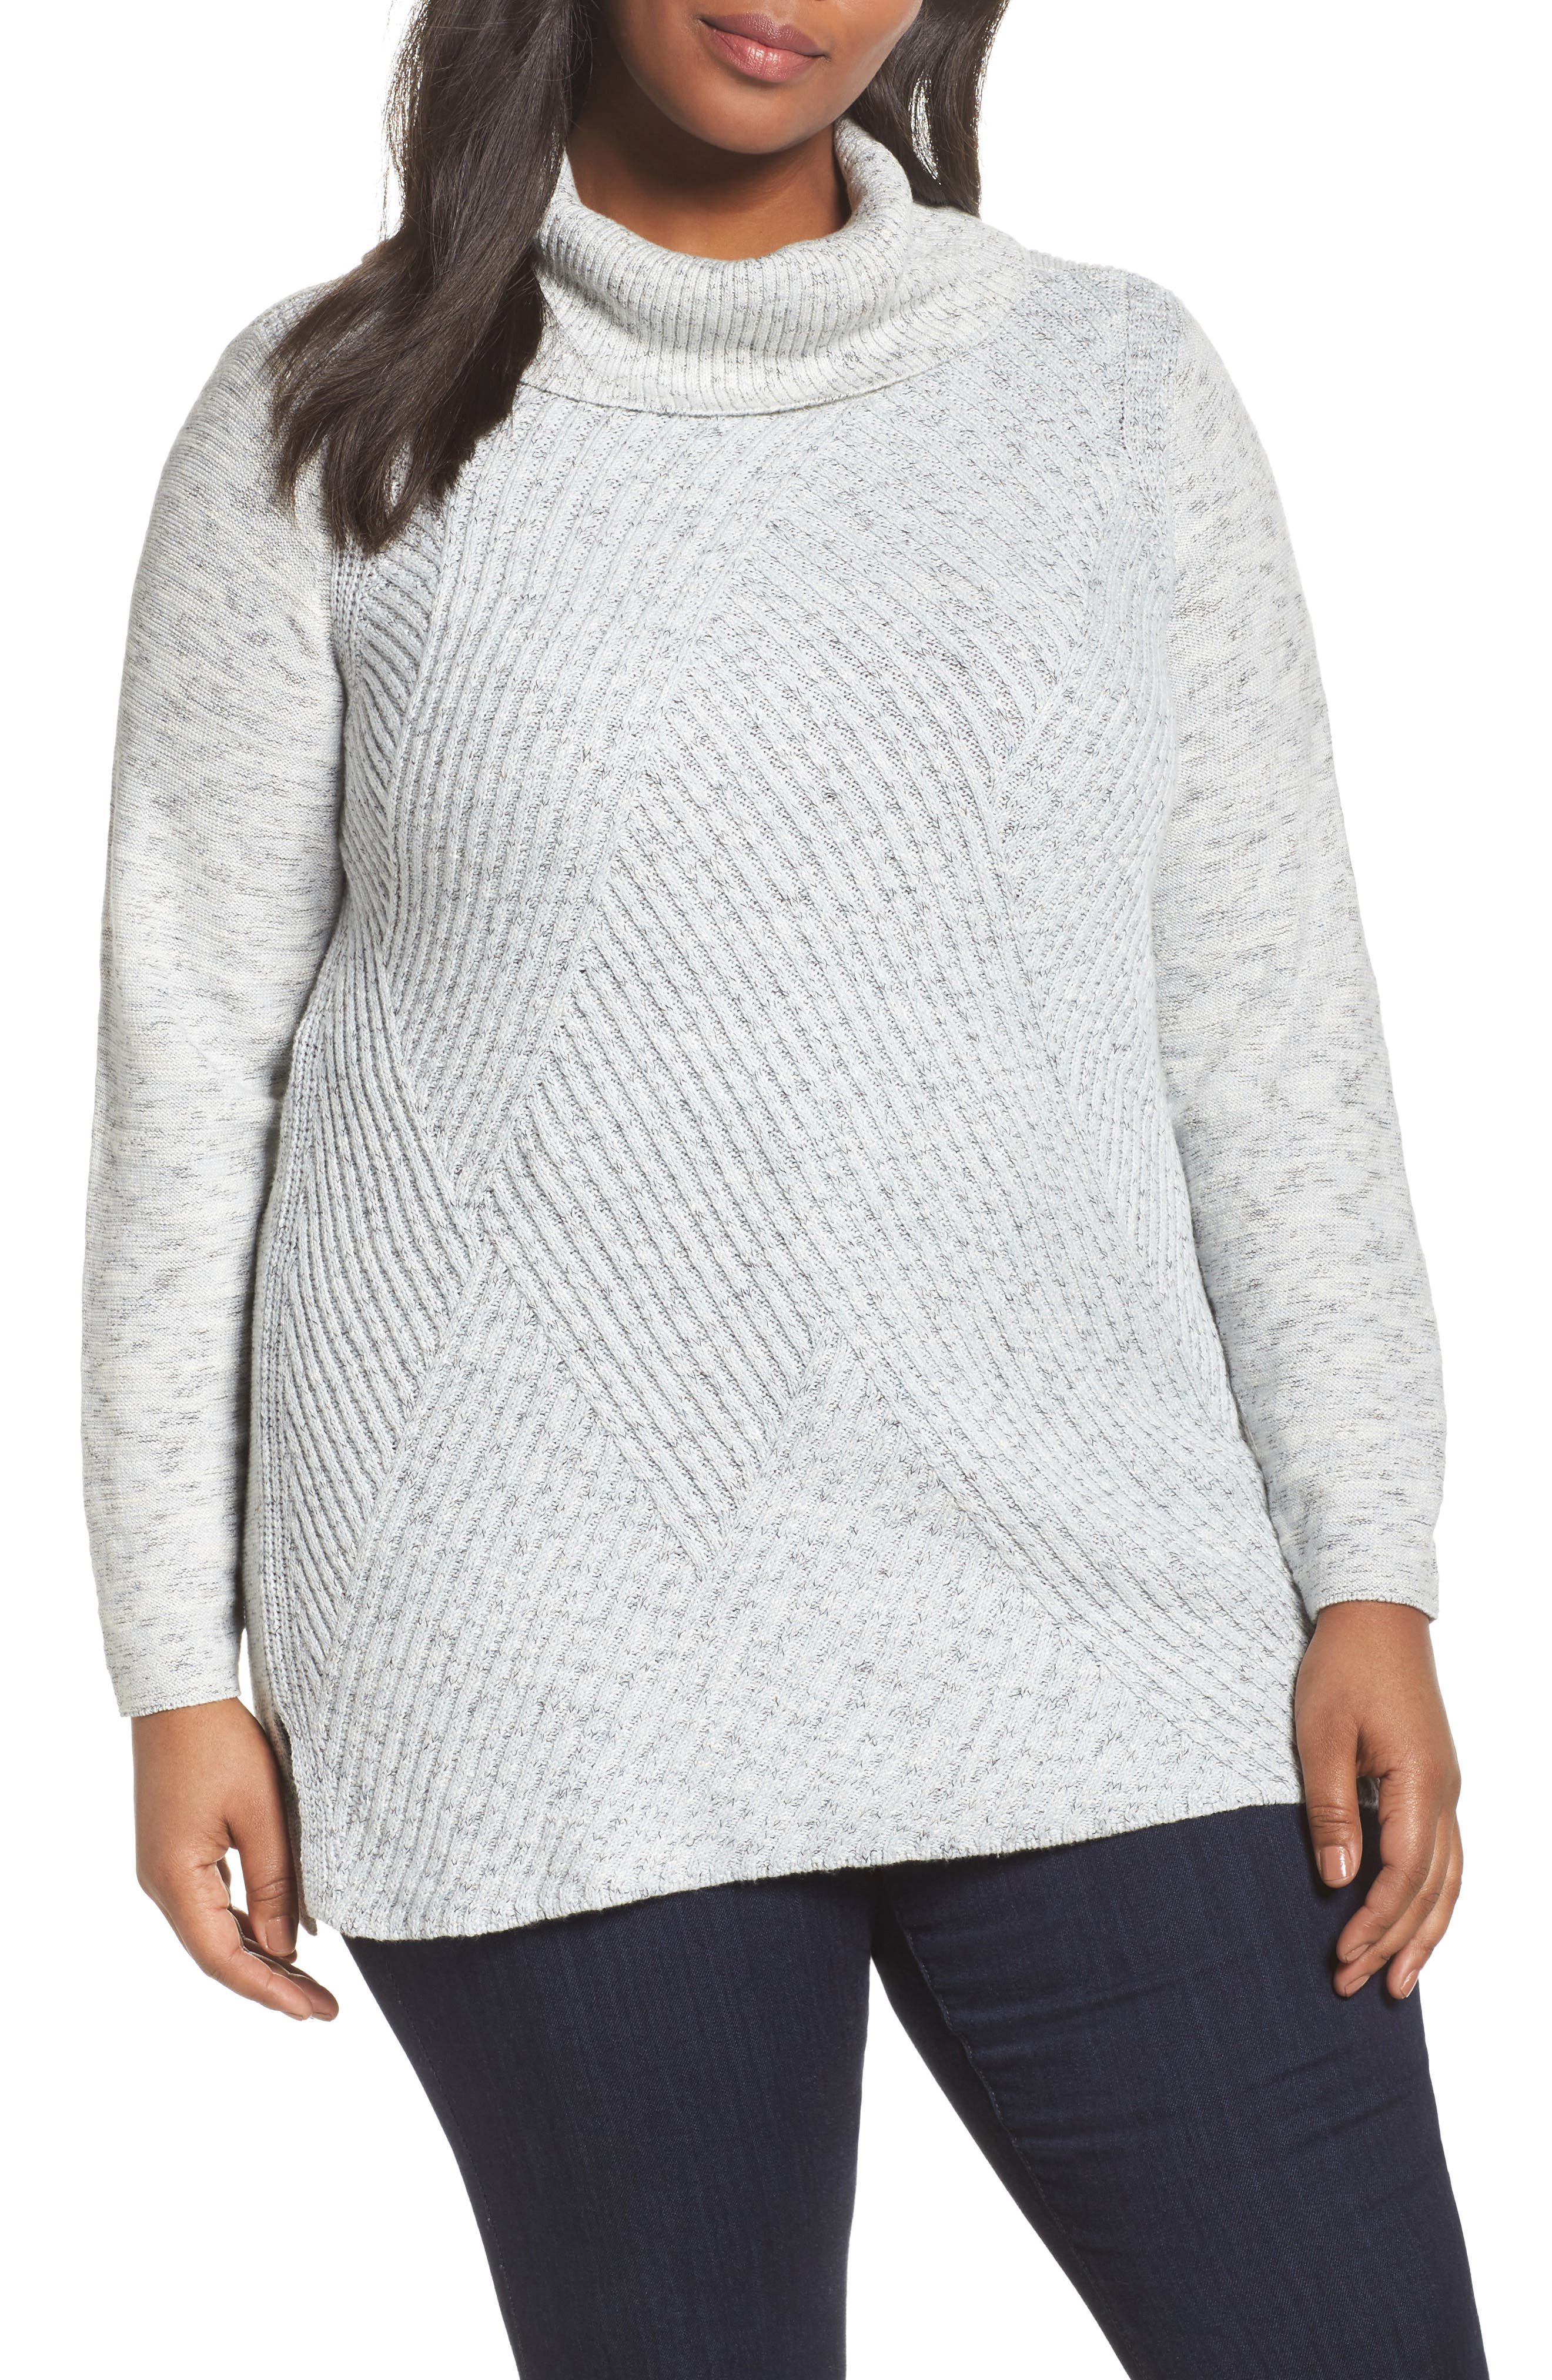 NIC+ZOE North Star Turtleneck Tunic (Plus Size)